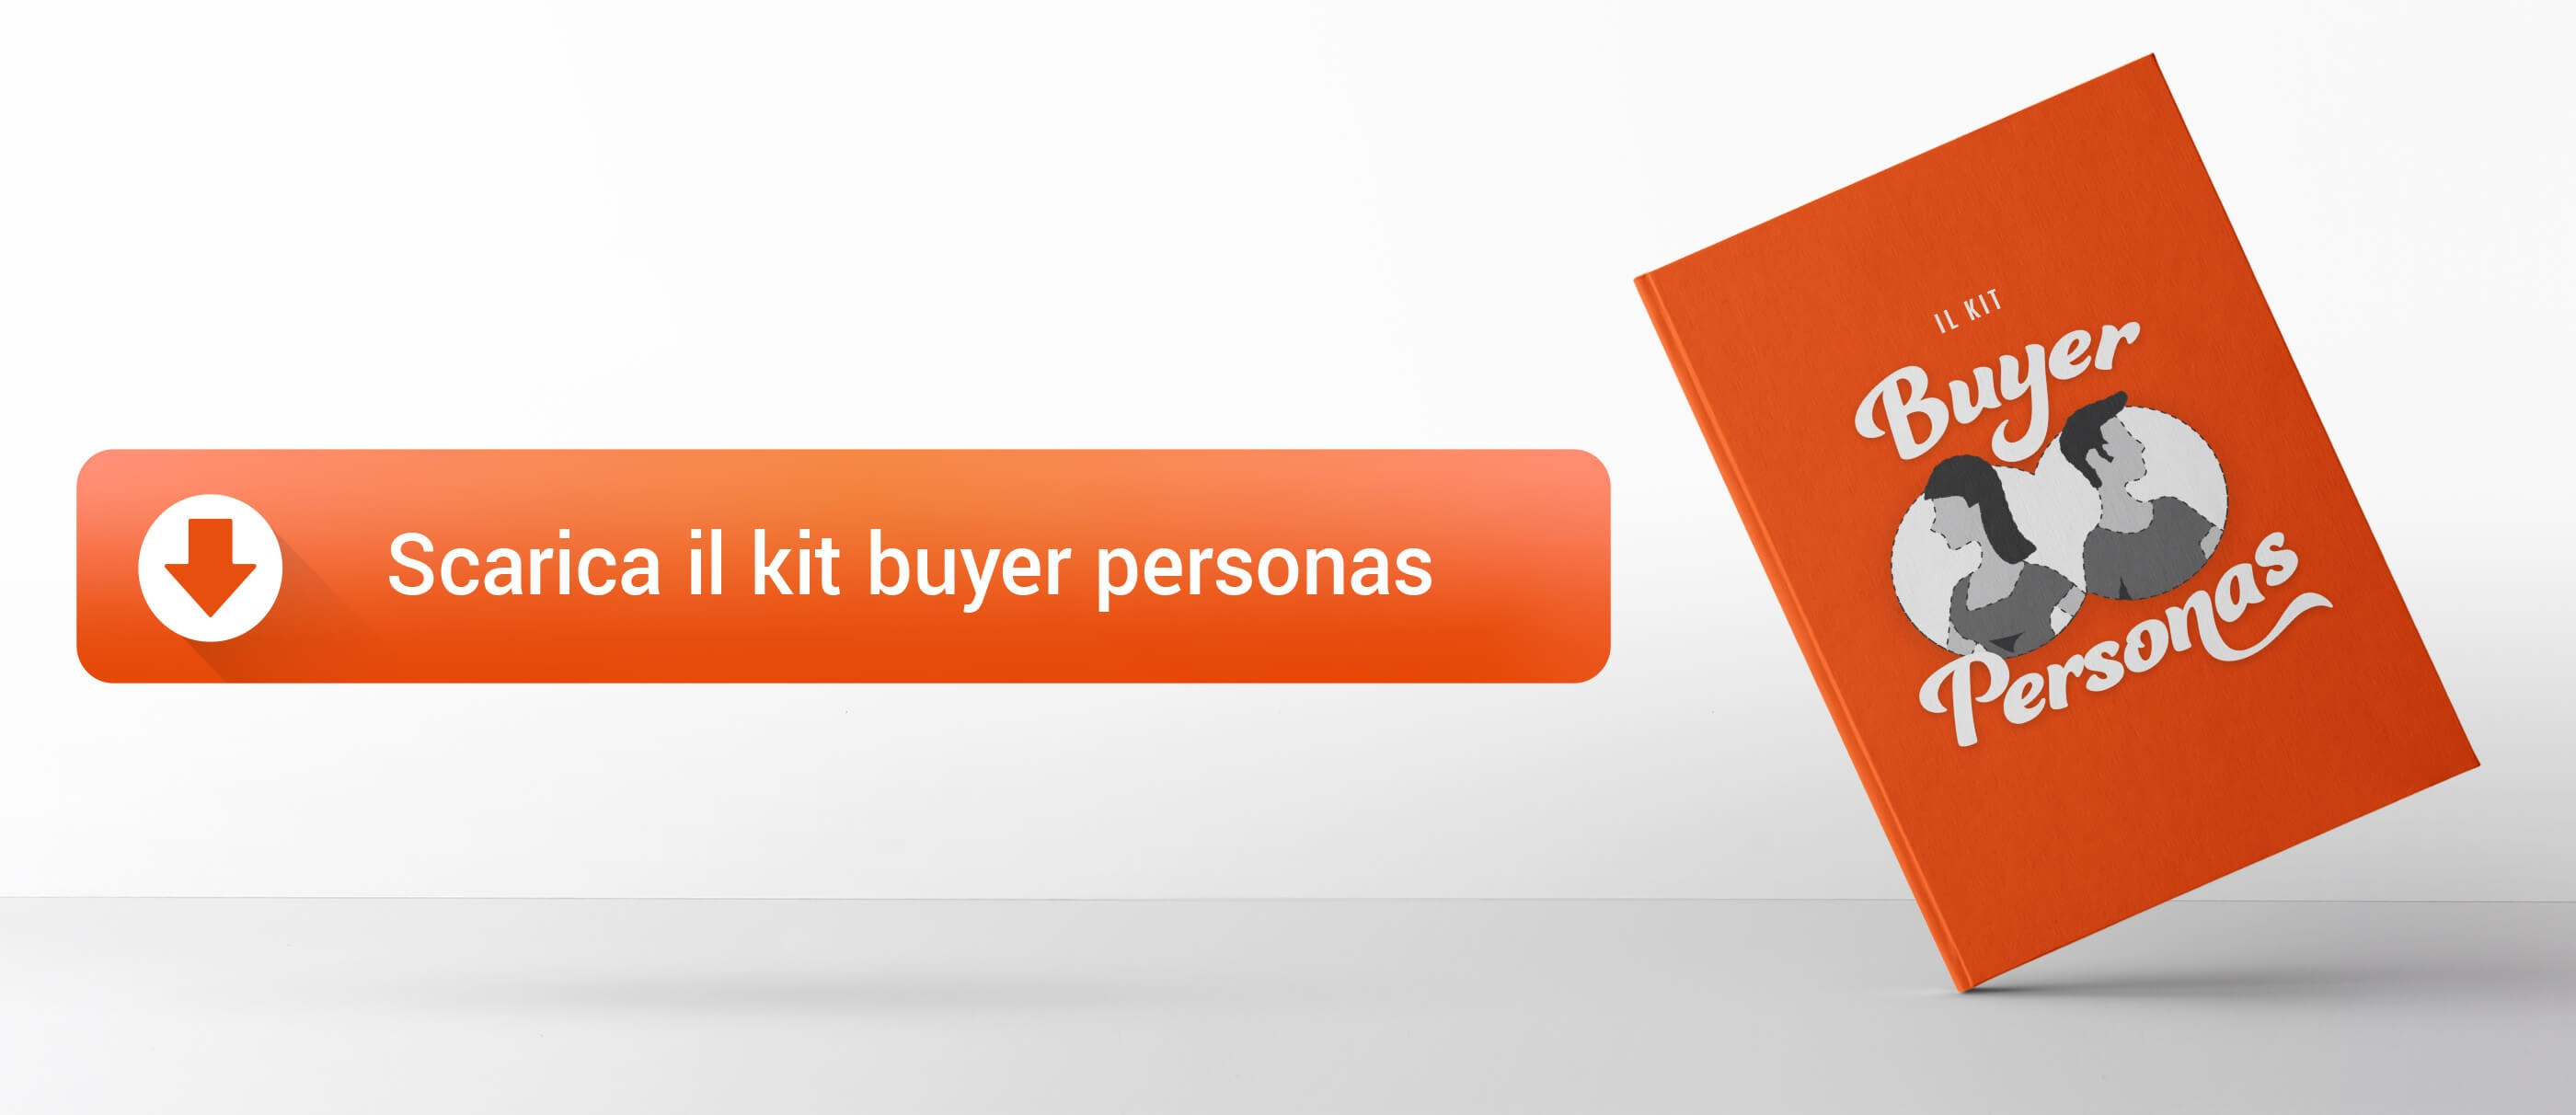 Scarica il kit buyer personas